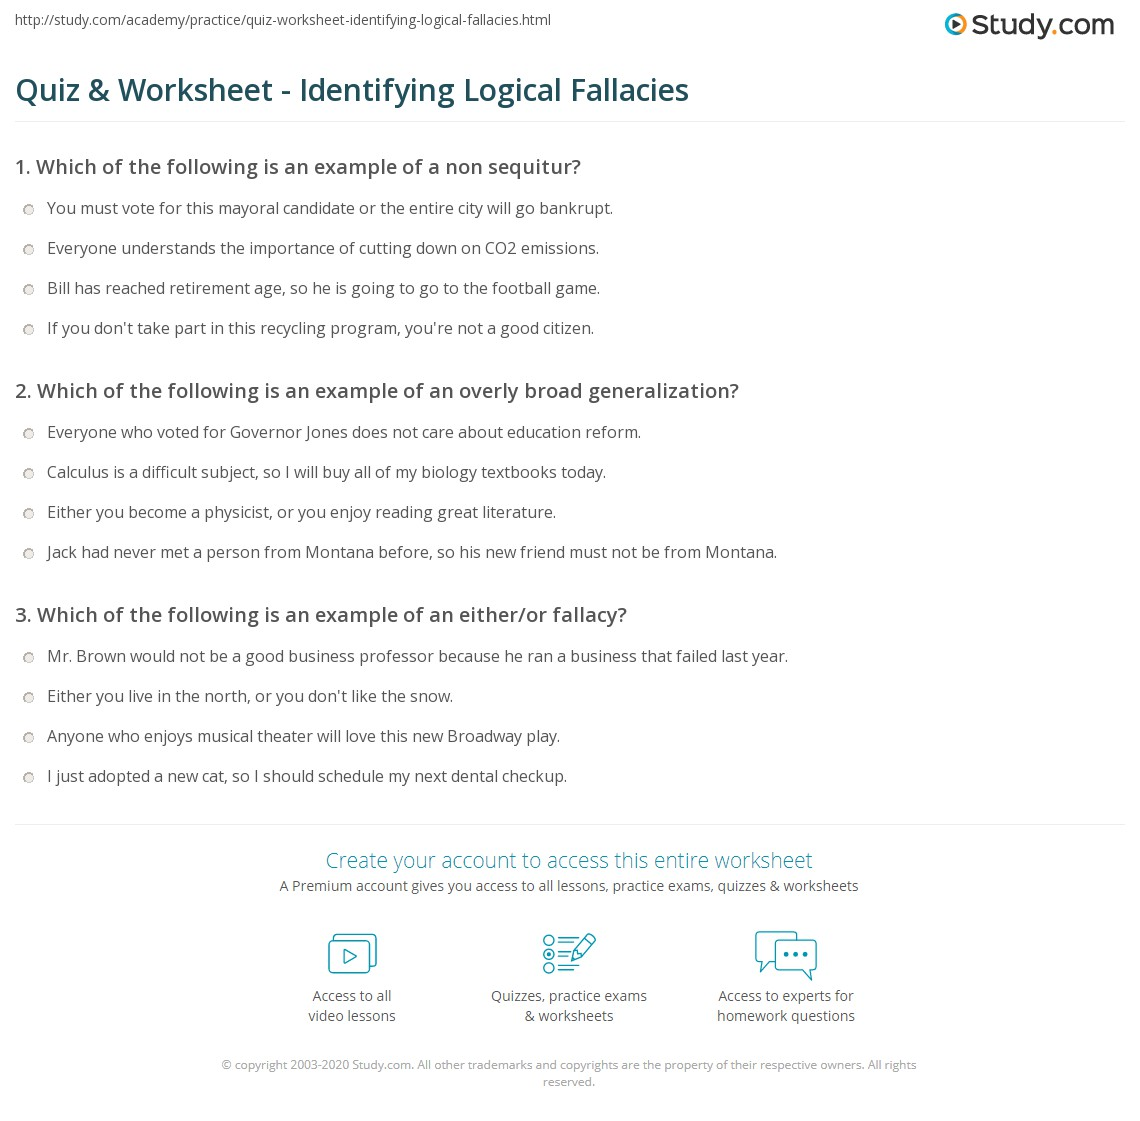 Quiz & Worksheet - Identifying Logical Fallacies | Study.com